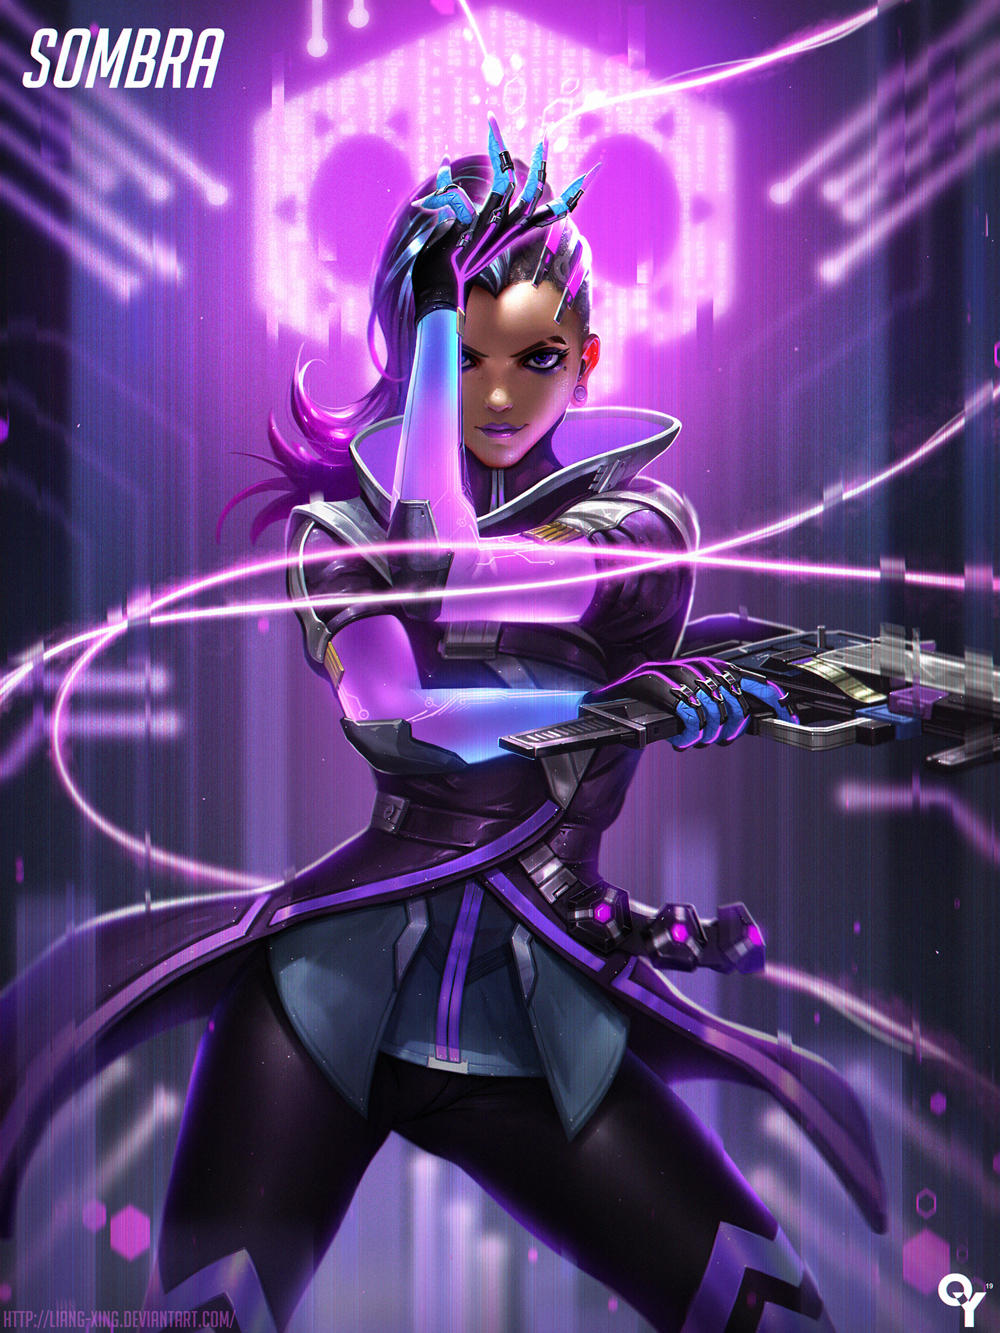 Sombra by Liang-Xing